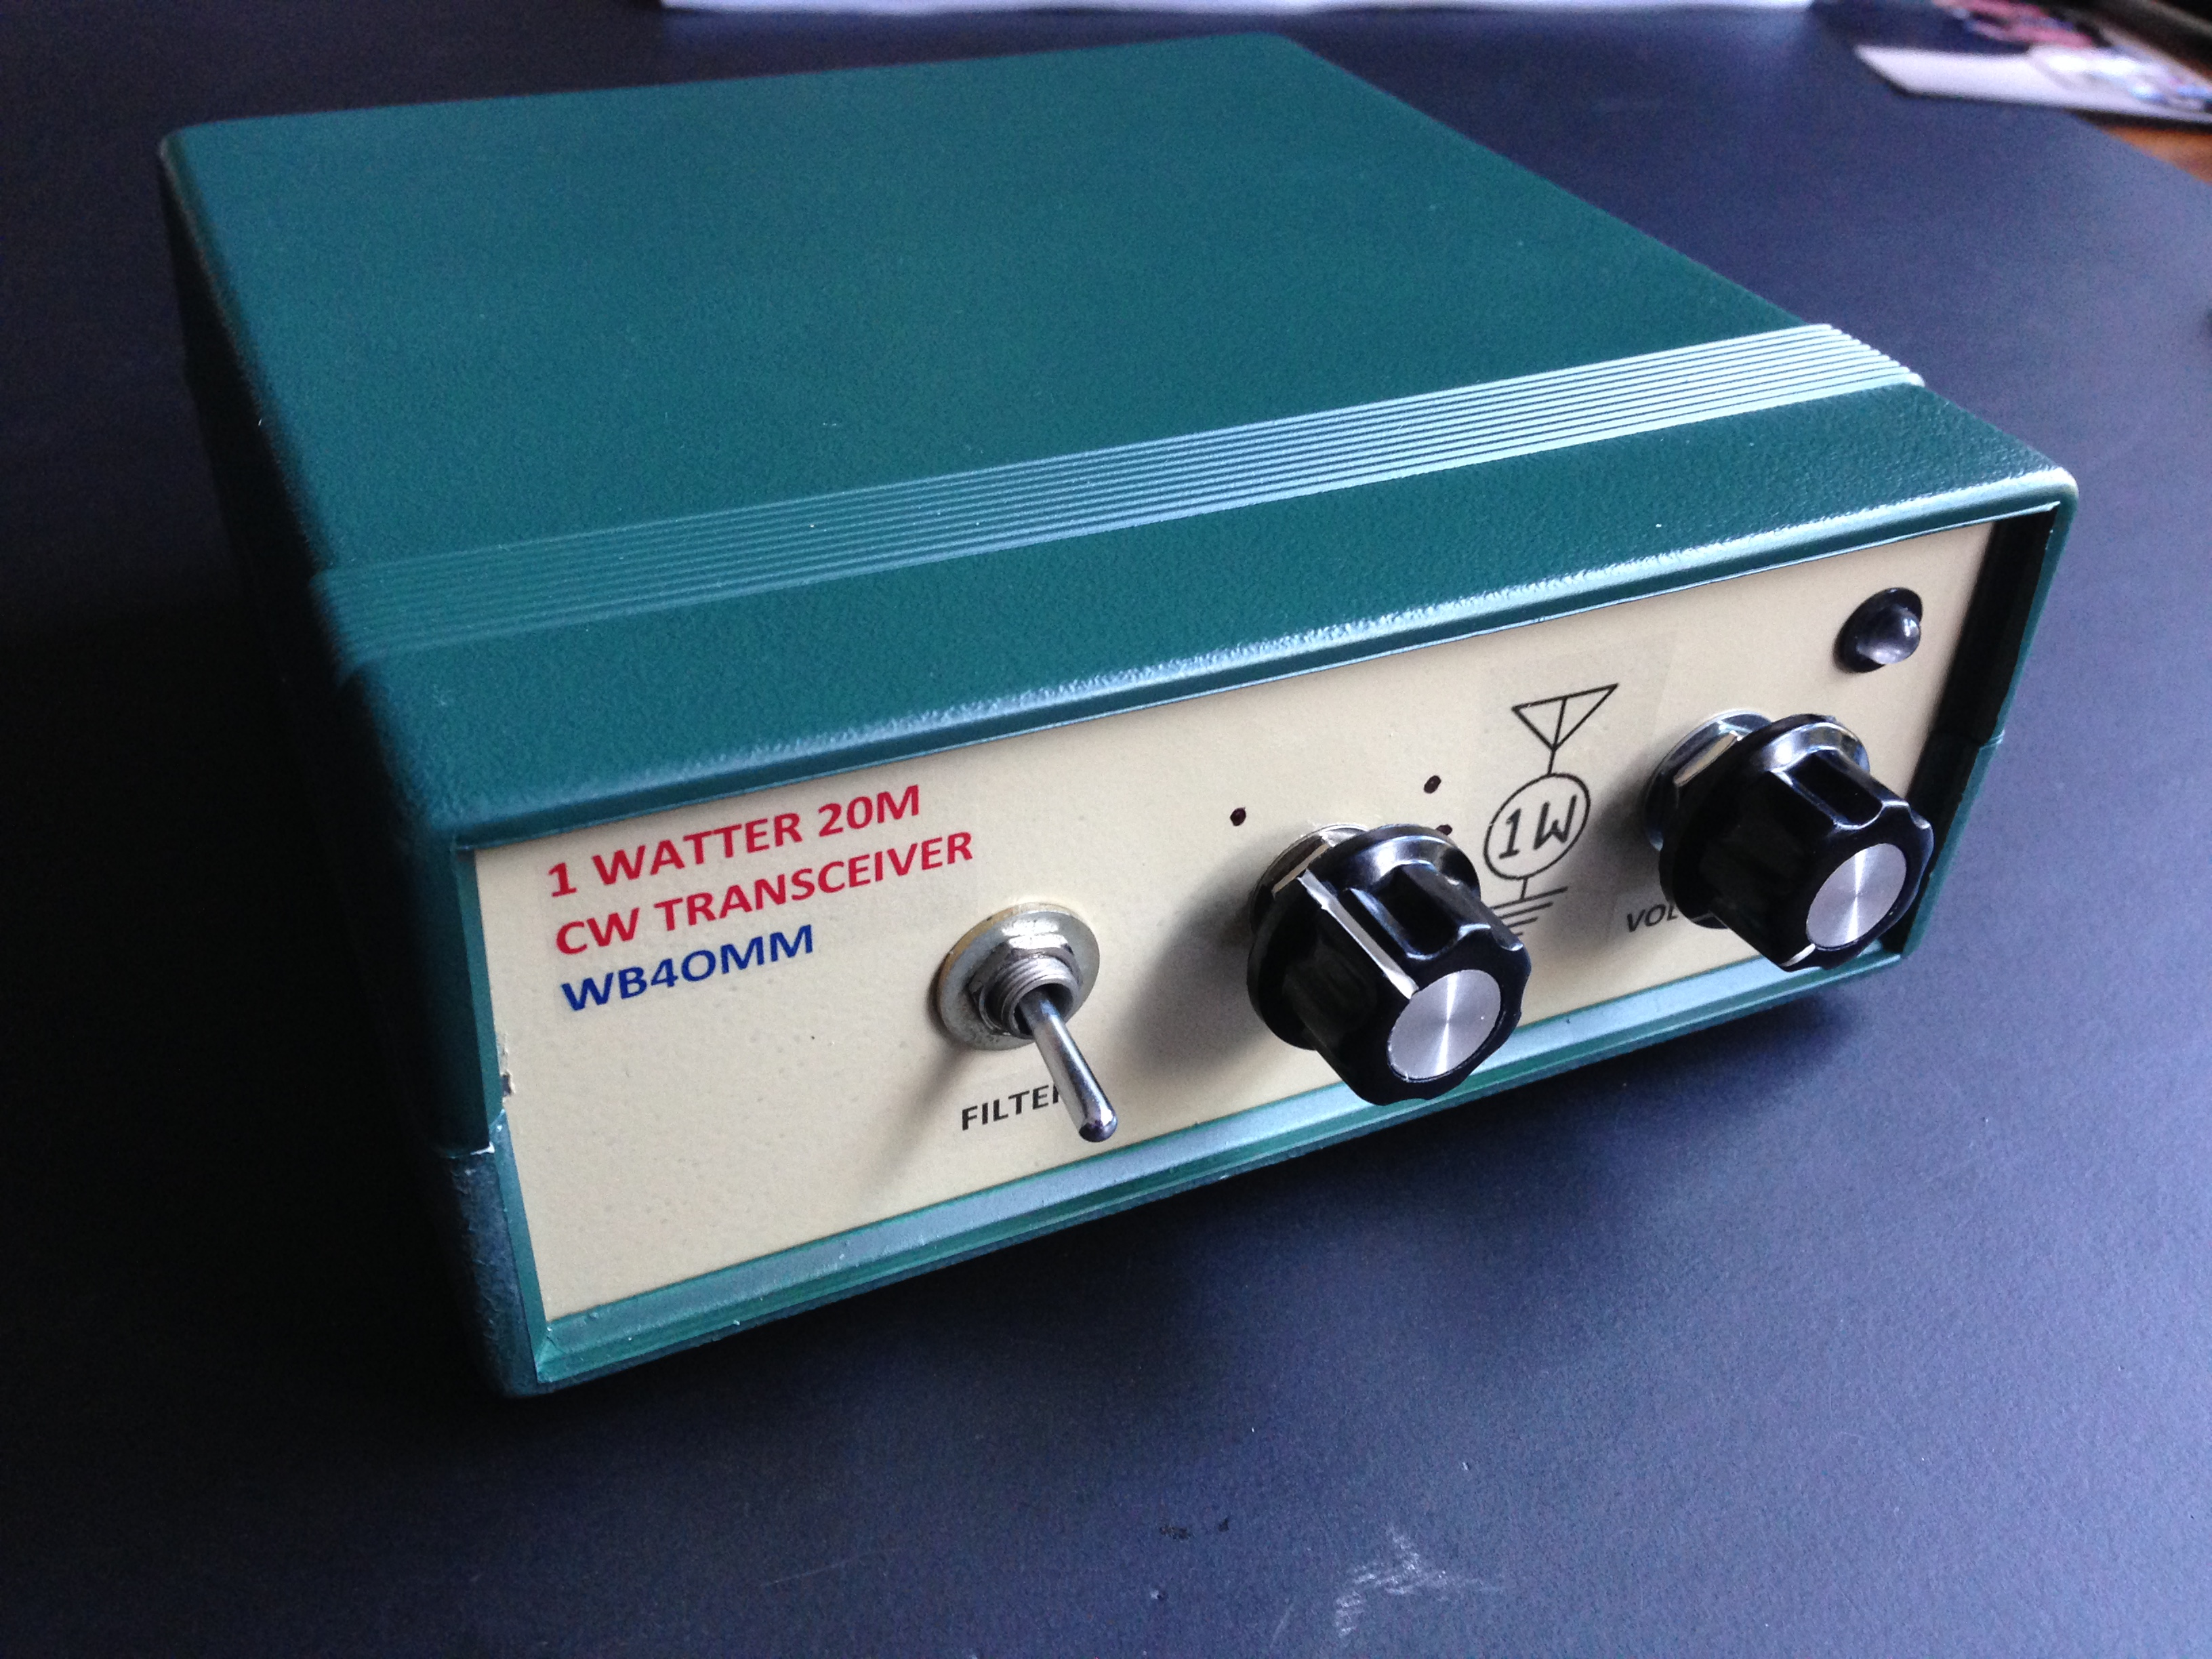 Amateur Radio Station Wb4omm: The 1 Watter 20M Gets A Case!